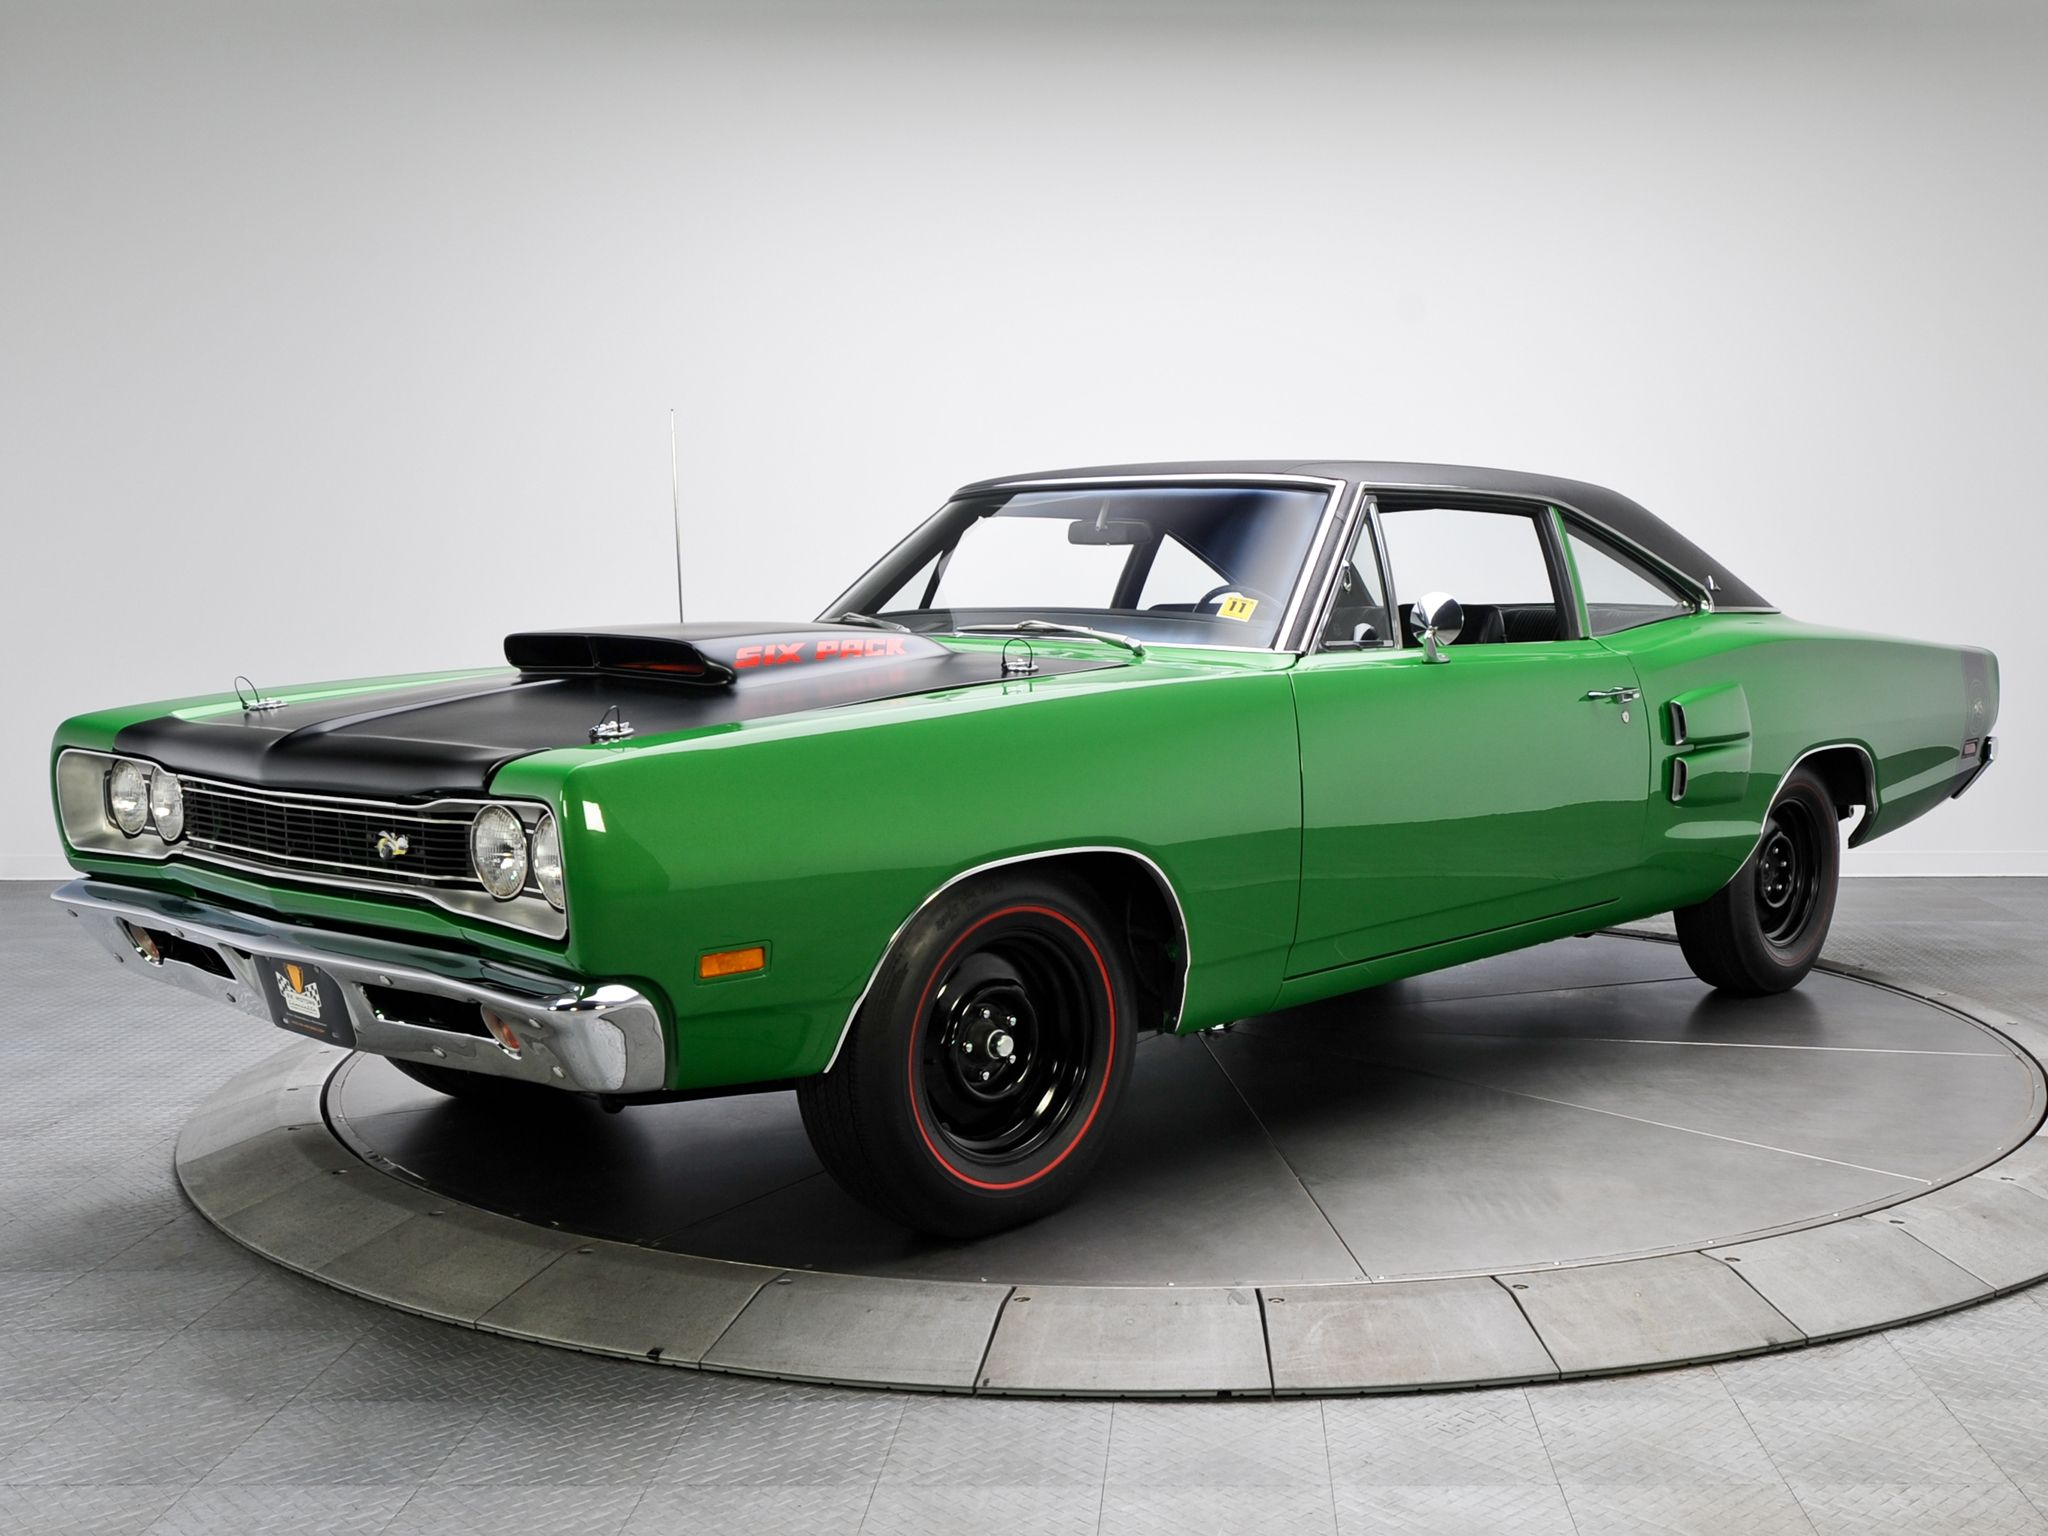 1969 dodge coronet super bee 440 six pack coupe wm21 | mopar